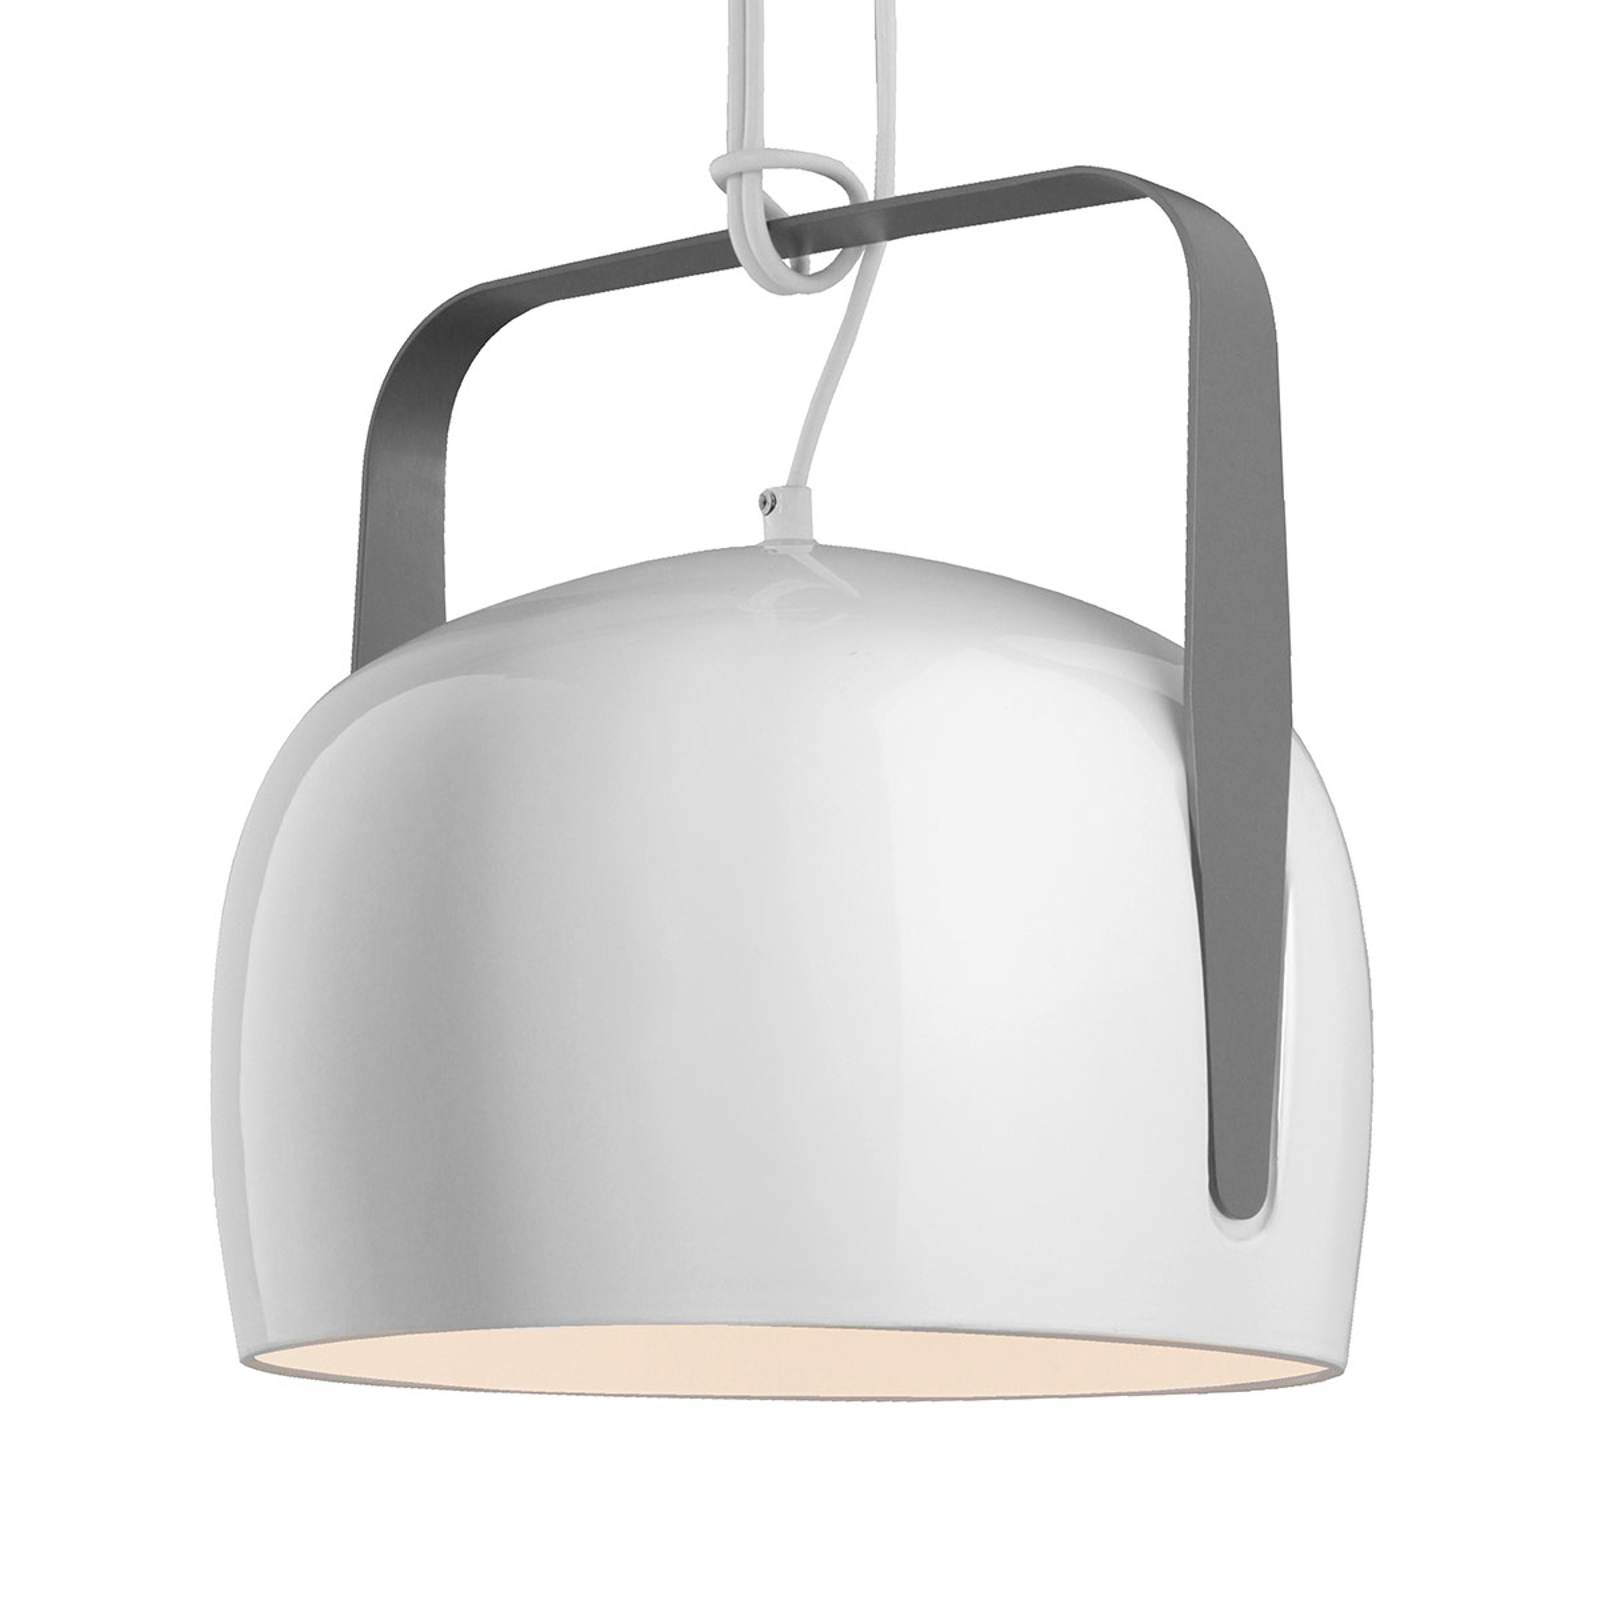 Karman Bag - suspension blanche, Ø 32 cm, lisse